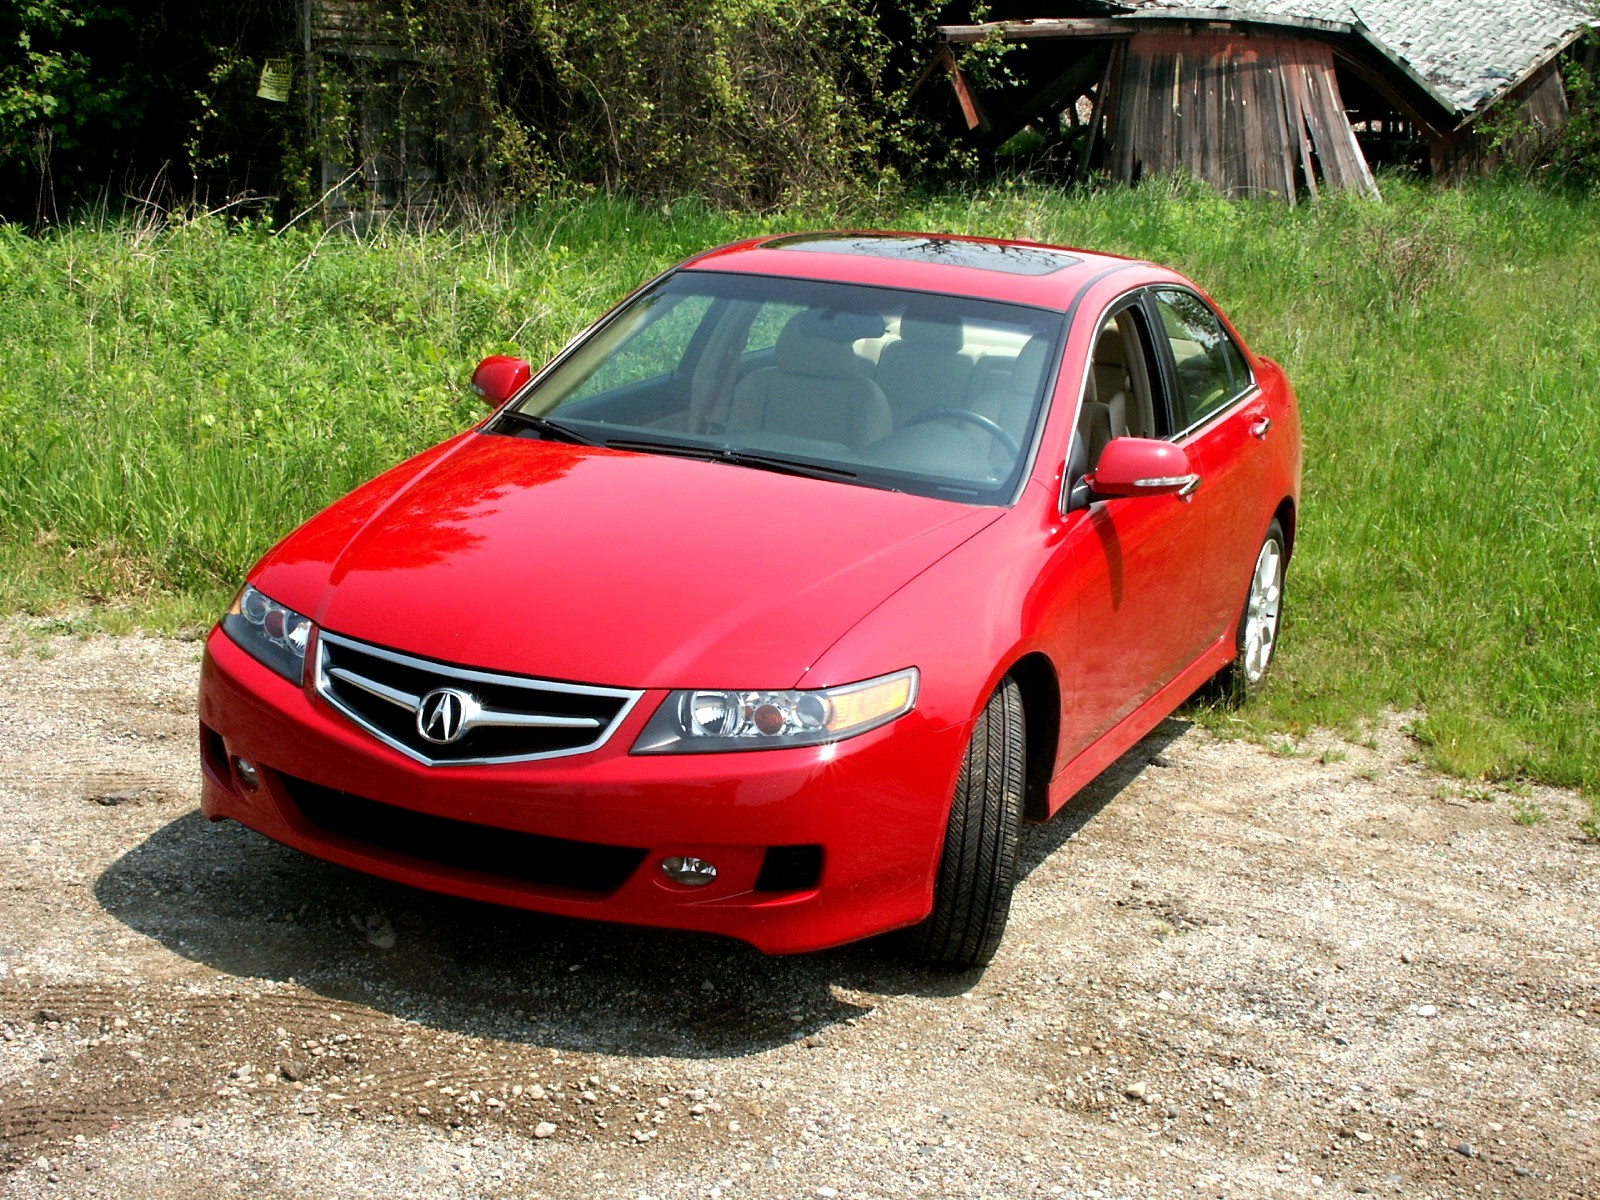 Acura TSX red #4